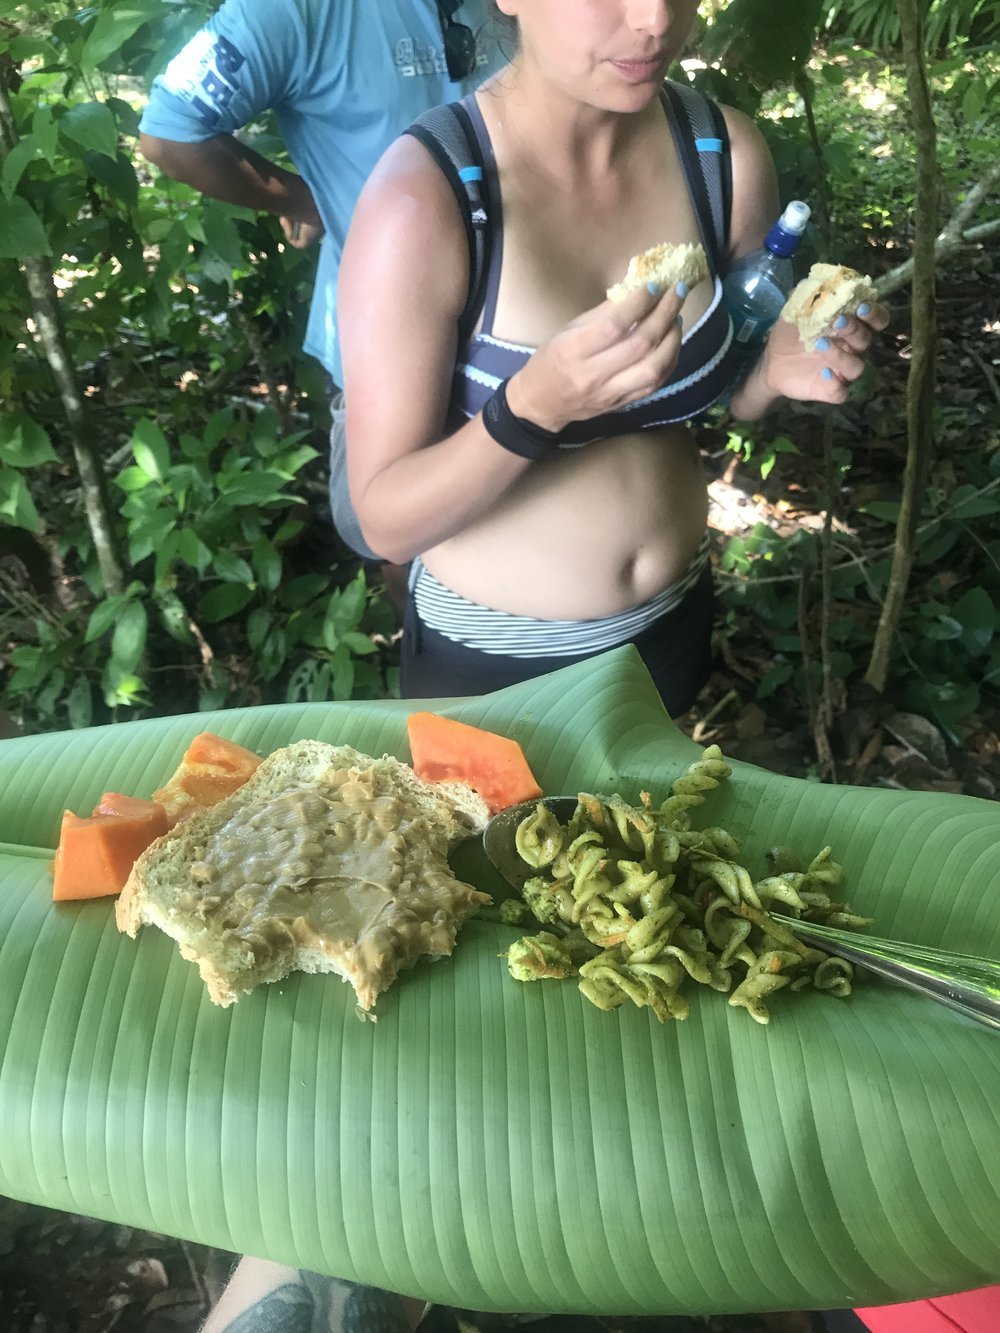 my 11th time in latin america: the first time i ever ate lunch off a banana leaf.